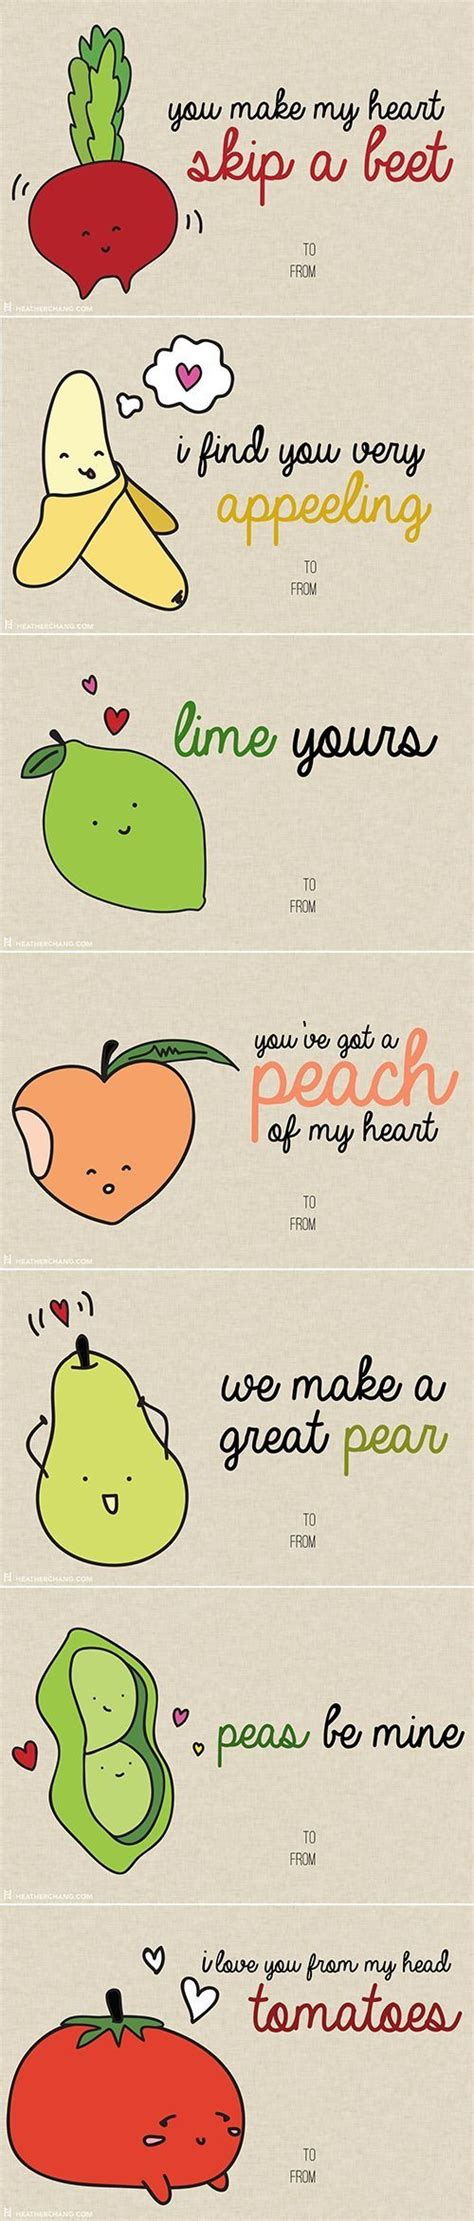 cheesy valentines day jokes 102 best images about cheesy up lines bad jokes on